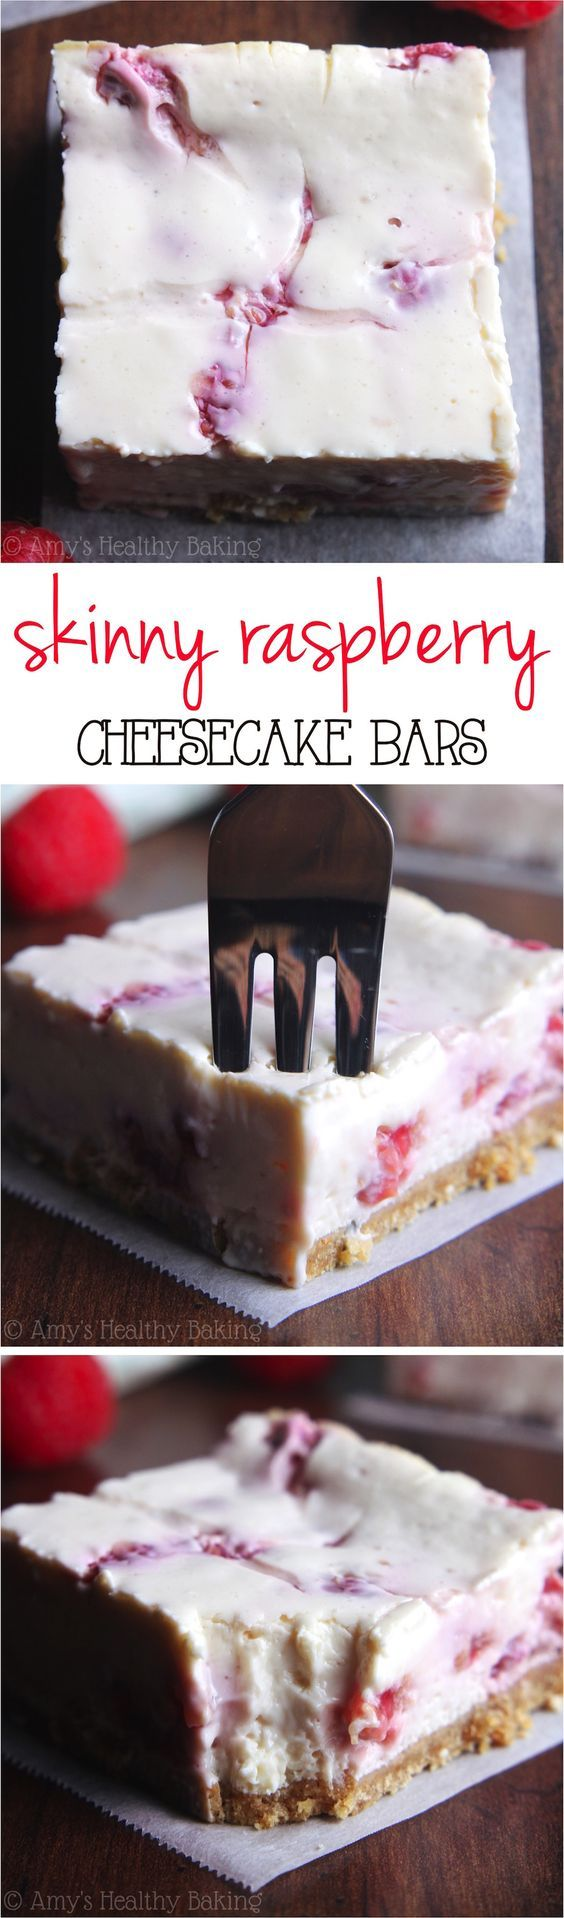 Skinny Raspberry Cheesecake Bars -- SO easy to make and packed with 5g of protein! Only 97 calories!